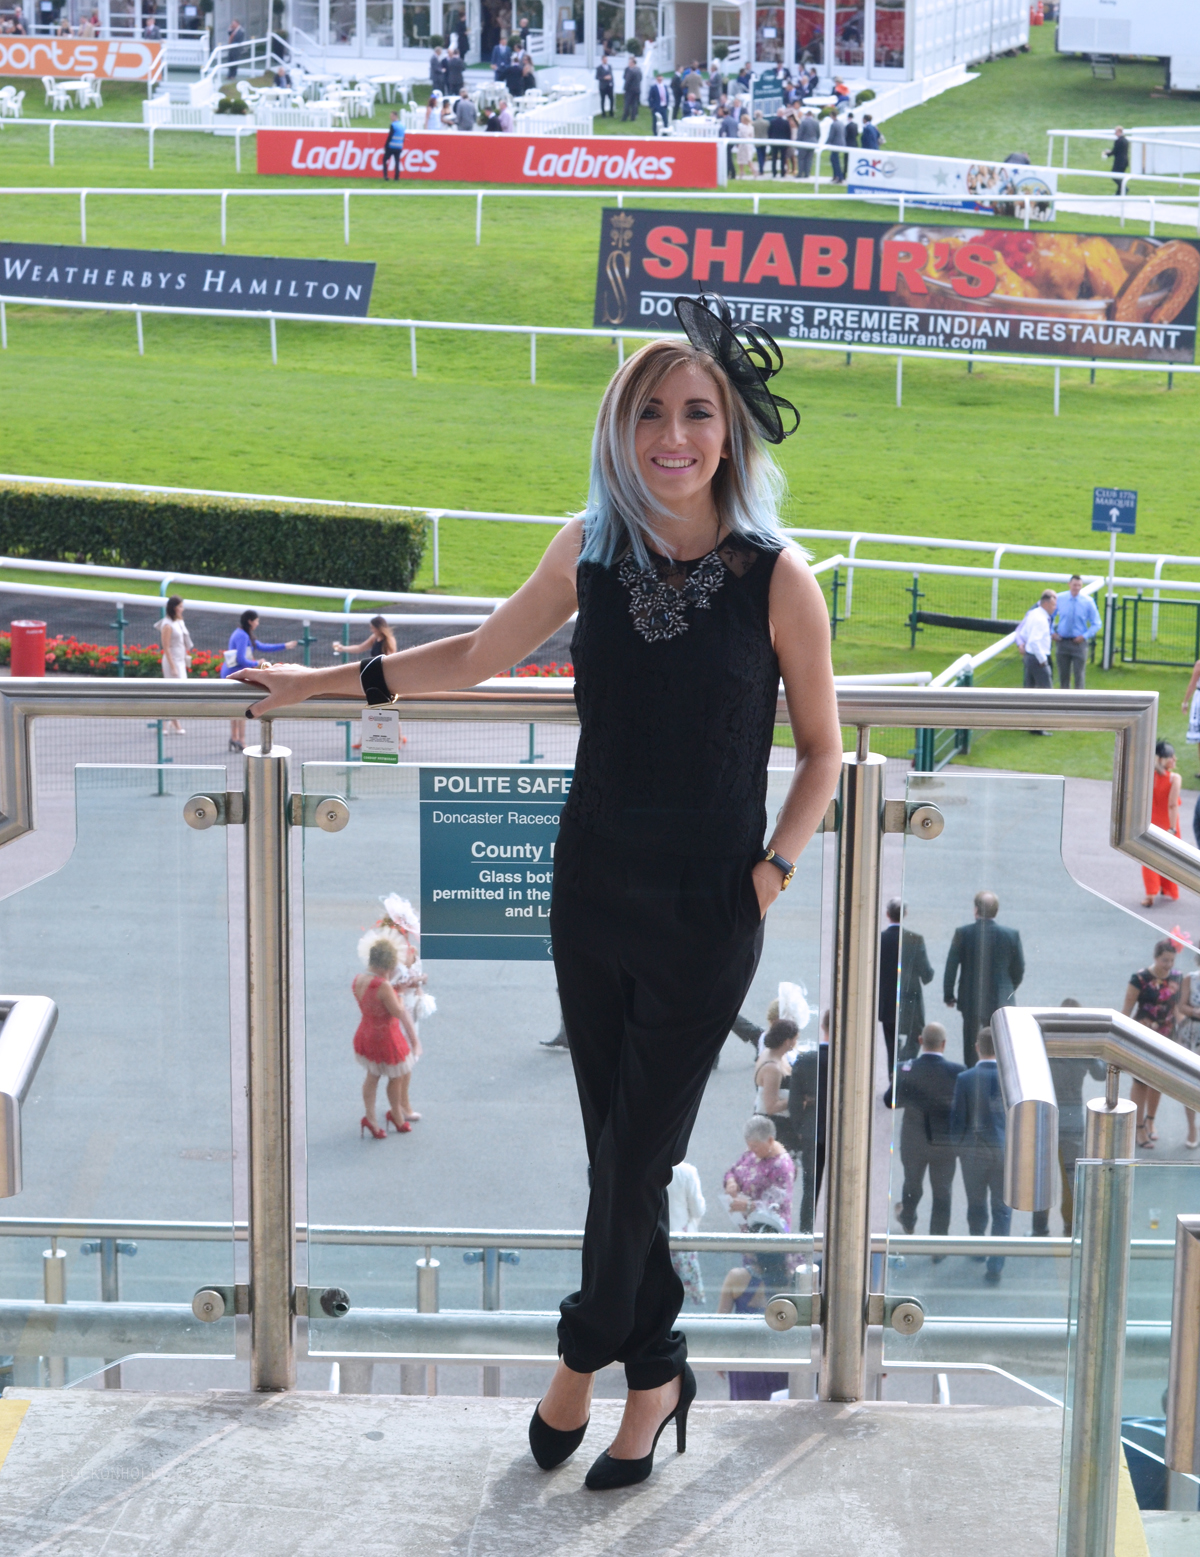 Outfit for Ladbrokes Ladies Day at the Races - Doncaster